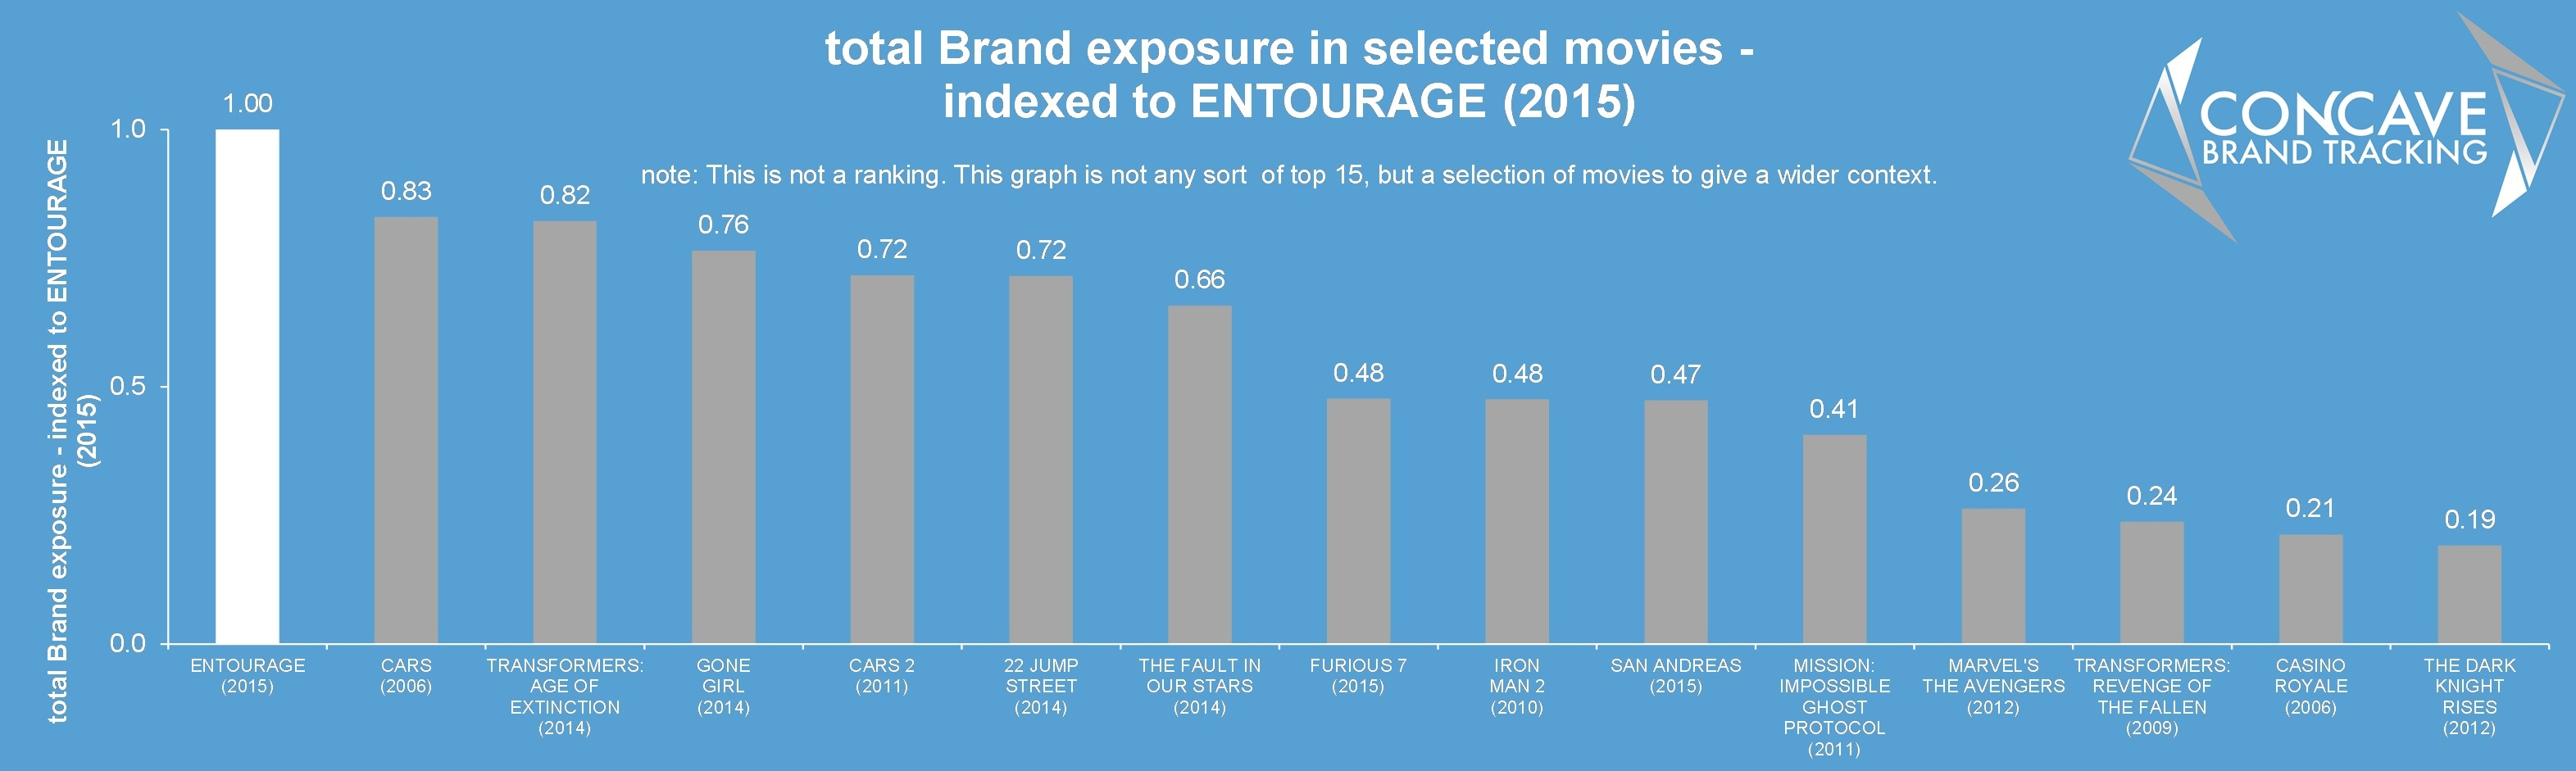 entourage brands in movies